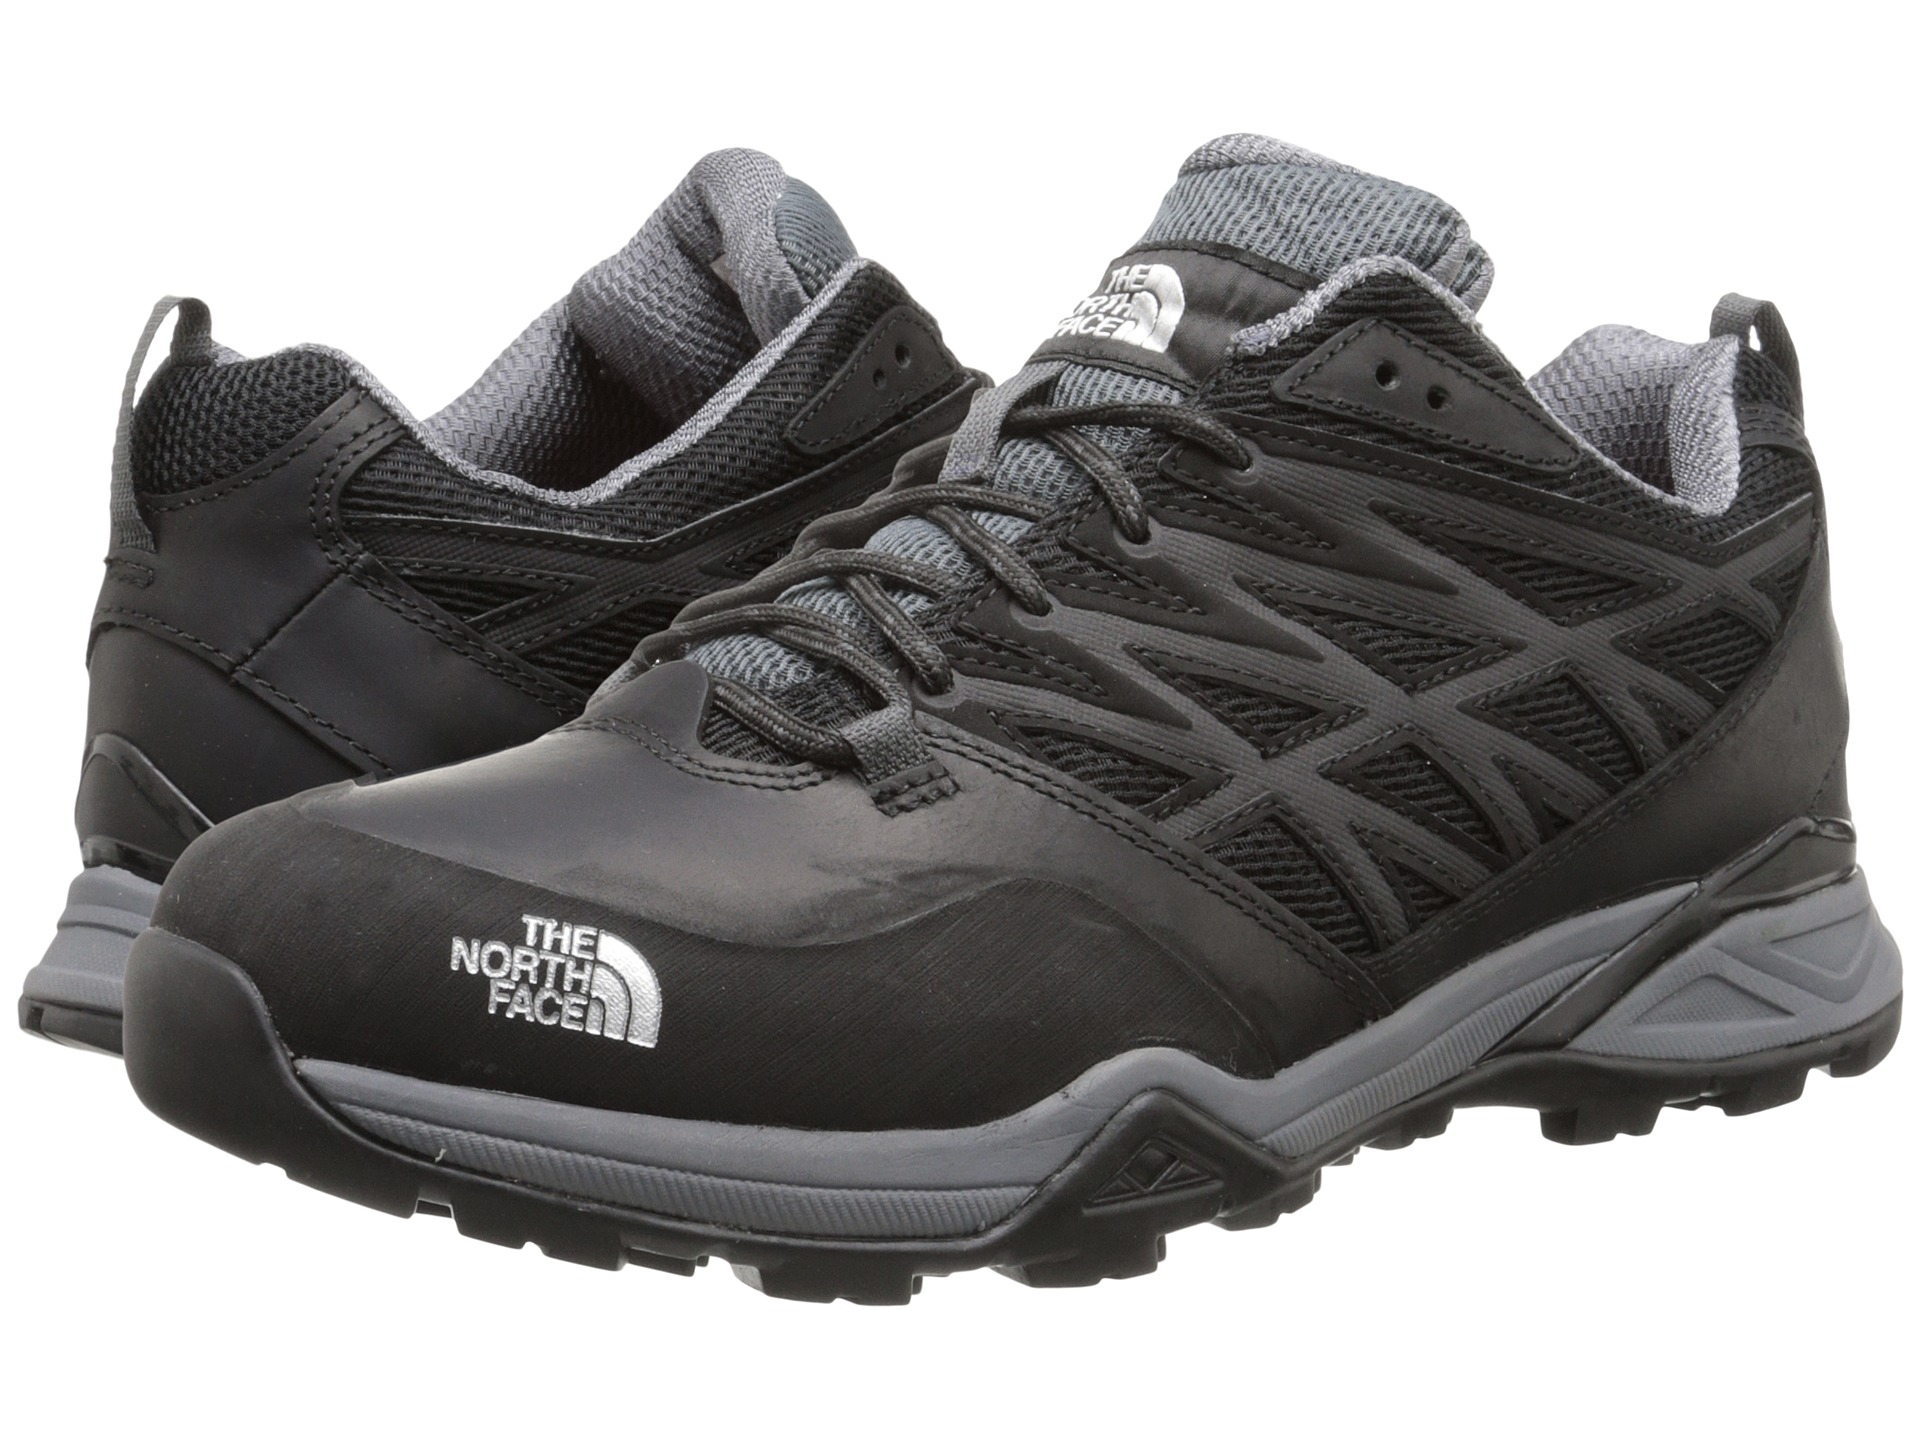 e620b98e35c Lyst - The North Face Hedgehog Hike in Black for Men